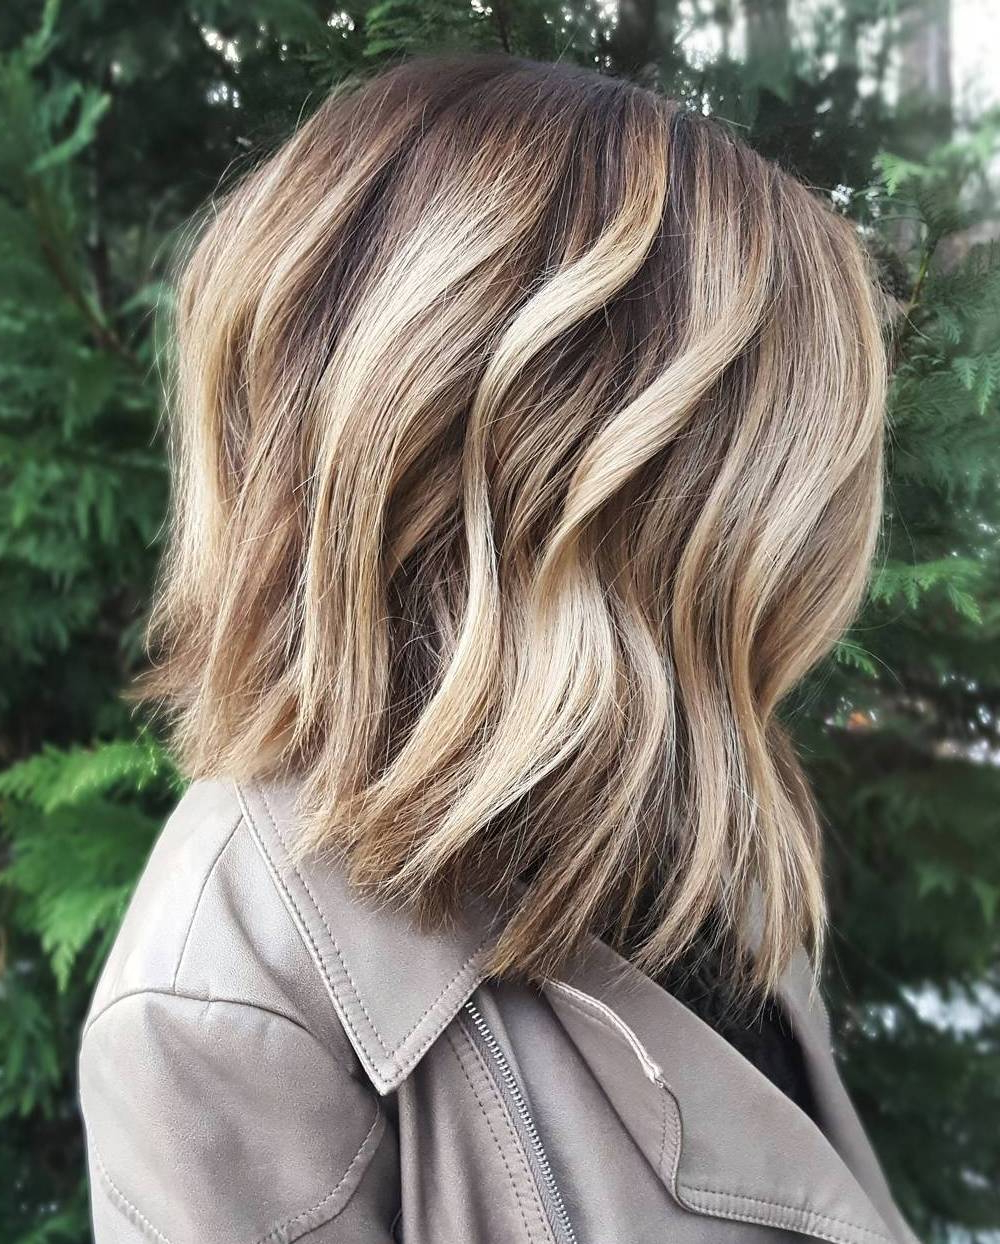 20 Dirty Blonde Hair Ideas That Work On Everyone Throughout Messy Honey Blonde Bob Haircuts (View 7 of 20)